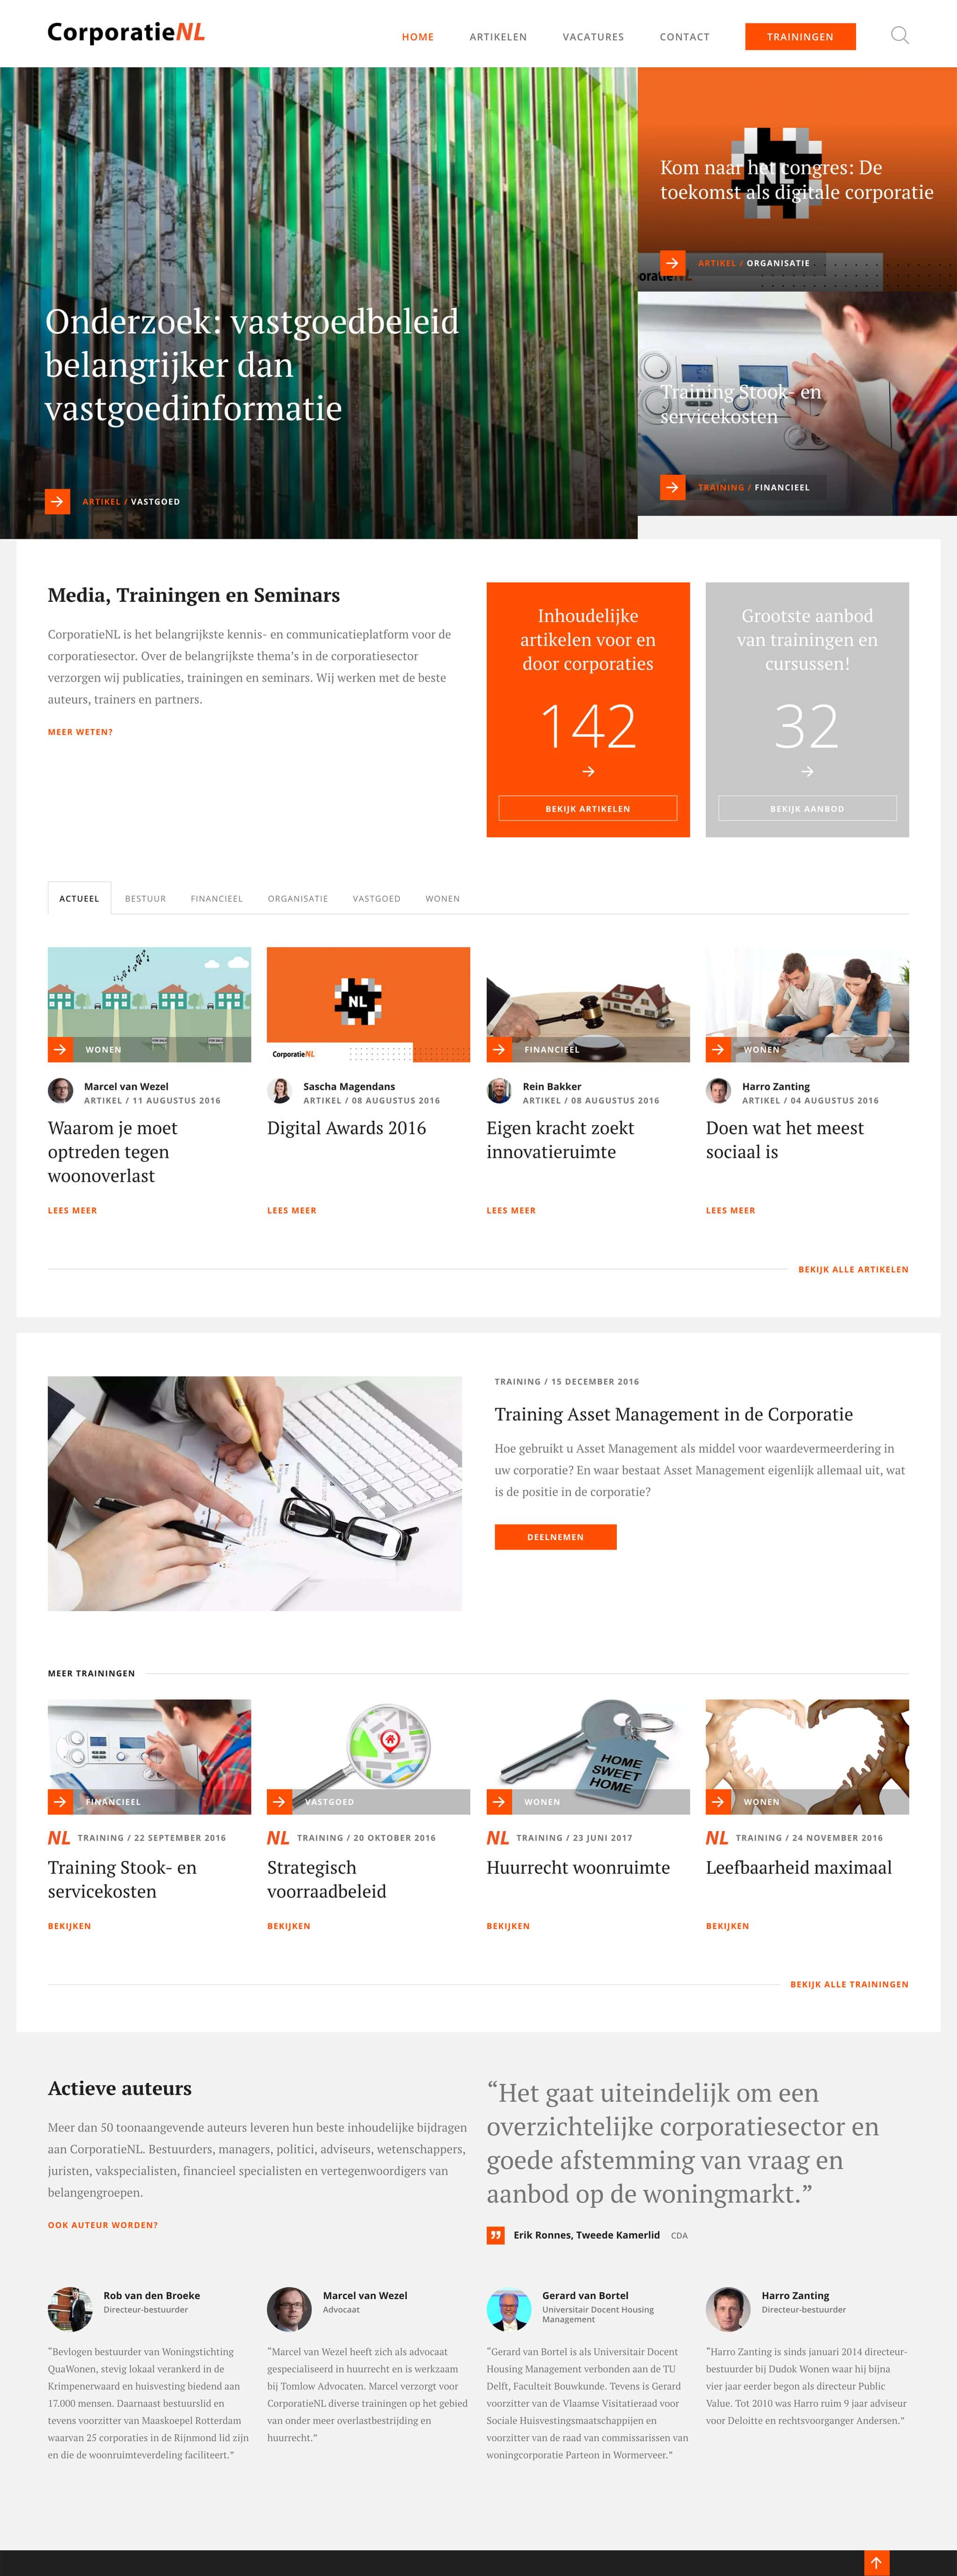 rodesk corporatieNL full page